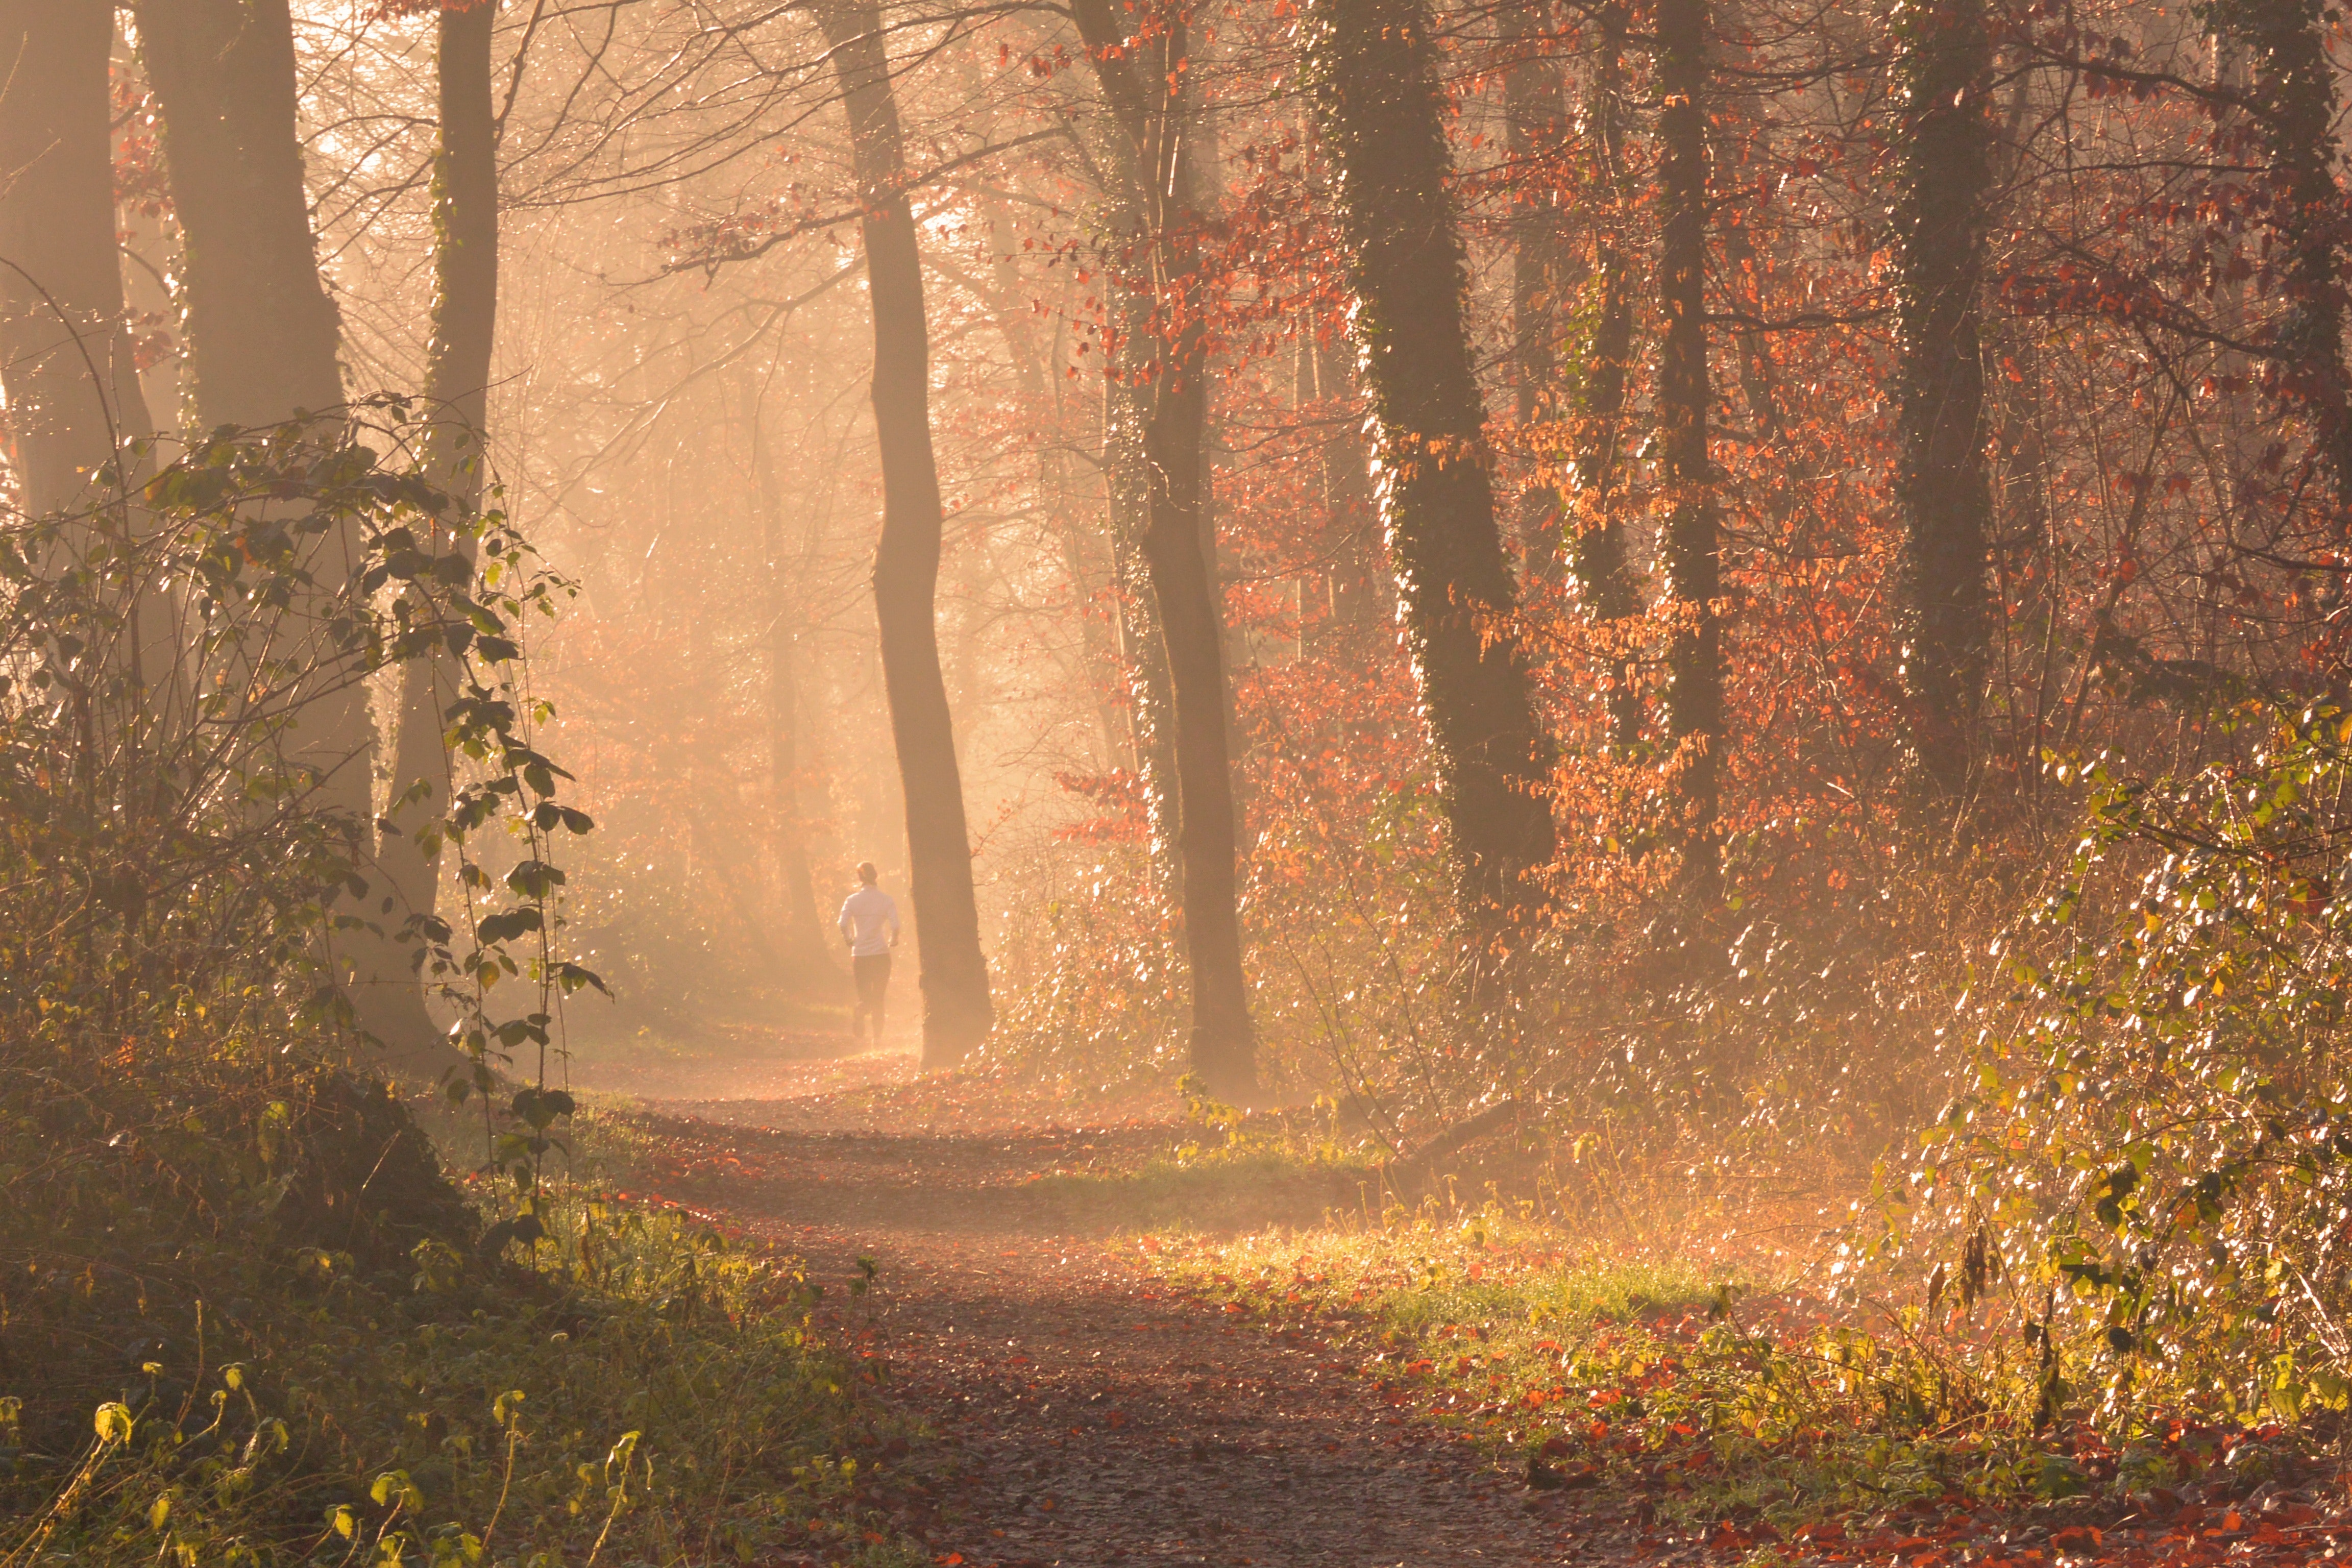 Scenic View of Forest, Autumn, Mist, Trees, Sunlight, HQ Photo